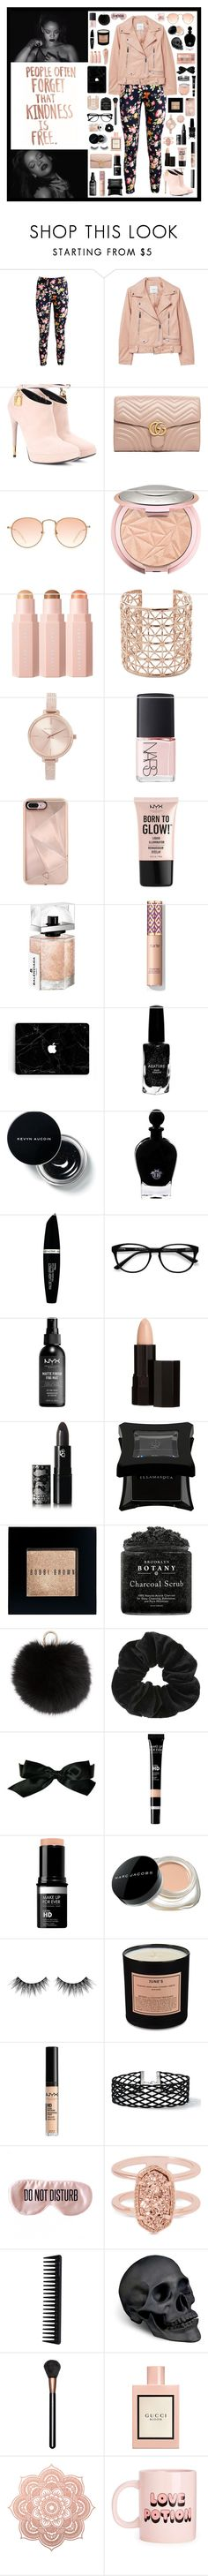 """kindness"" by tiny-girl-big-heart ❤ liked on Polyvore featuring Docele, MANGO, Tom Ford, Gucci, Sephora Collection, Co.Ro, Michael Kors, NARS Cosmetics, Rebecca Minkoff and Maybelline"